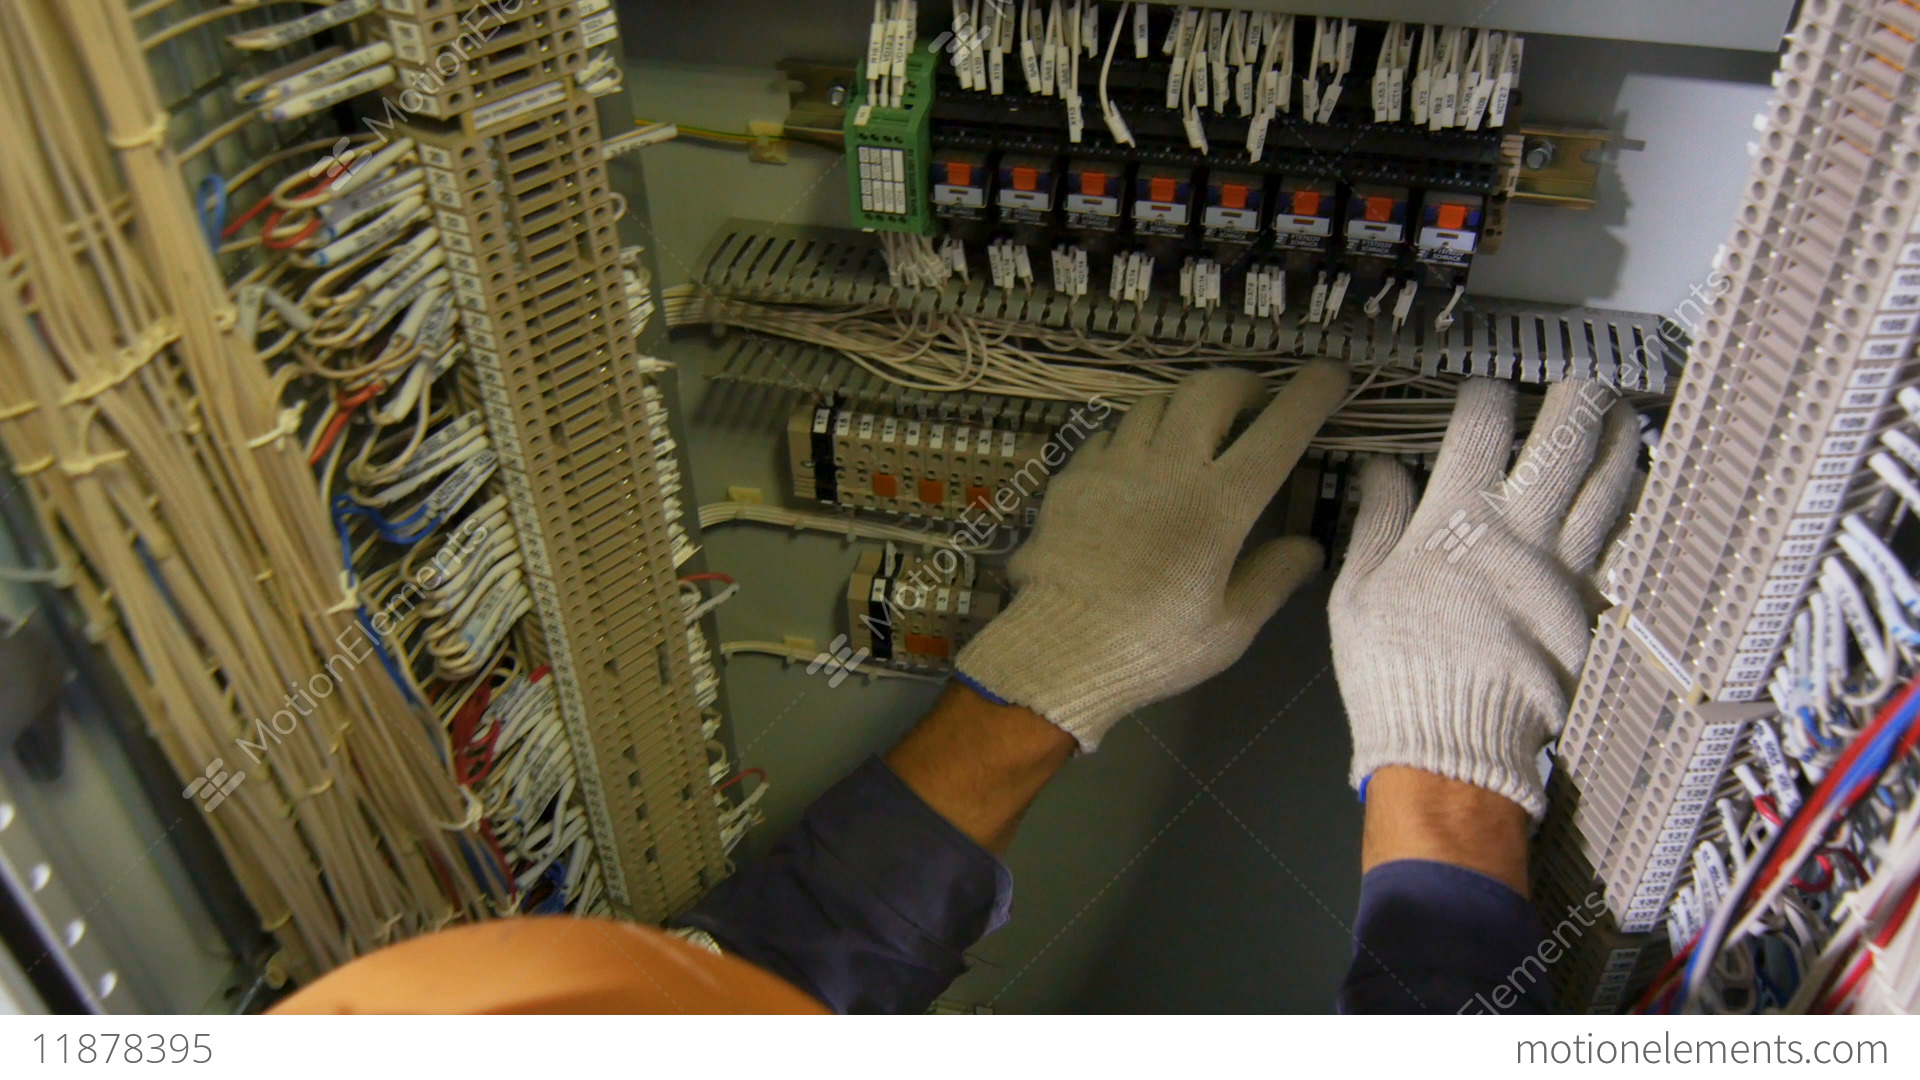 Technician In Cotton Gloves Connects Wires Switchboard Case Stock Wiring A Switch Board Video Footage